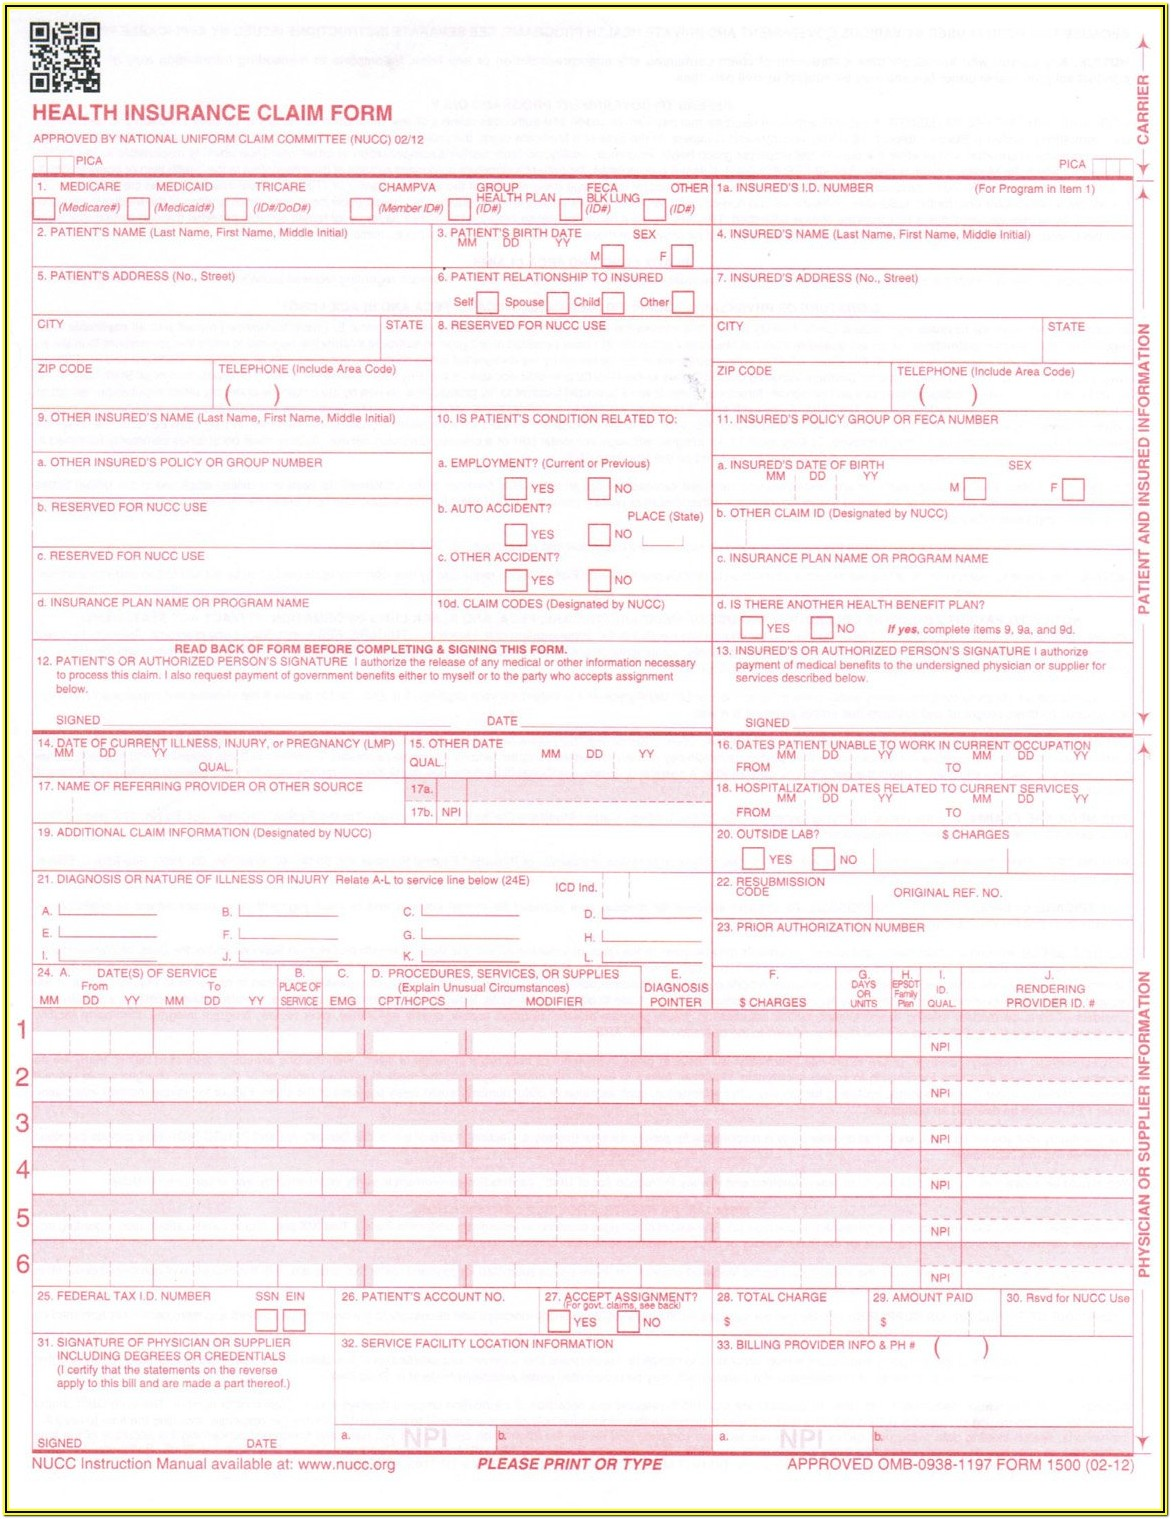 New Cms 1500 Claim Form Pdf